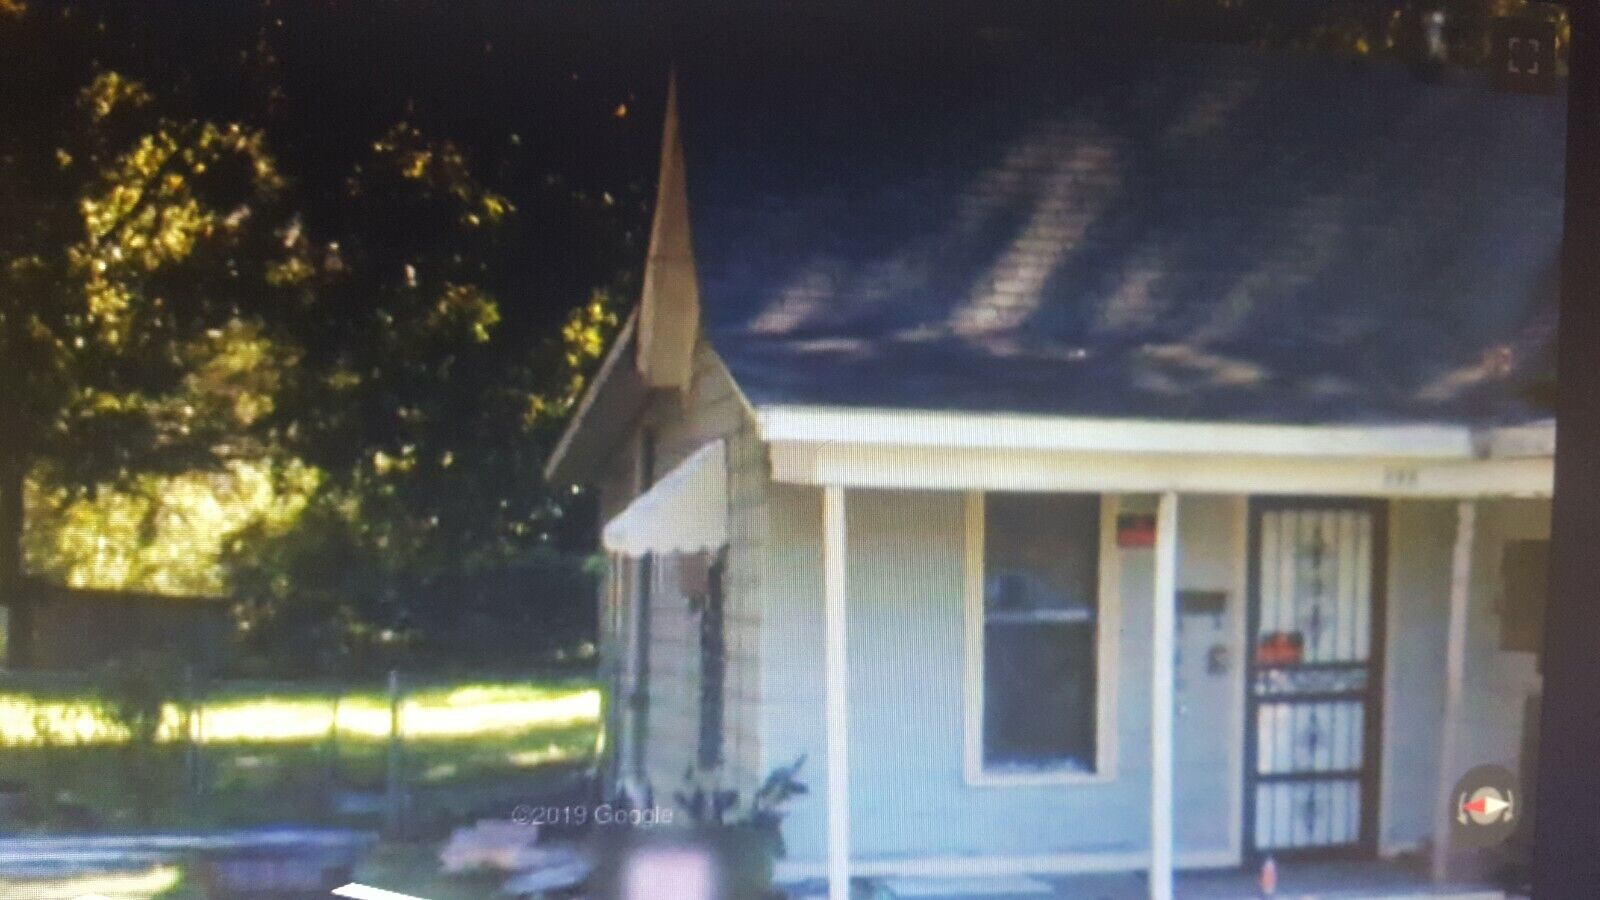 West Helena For Sale. Vacant. SOLD AS IS. - $1,499.00